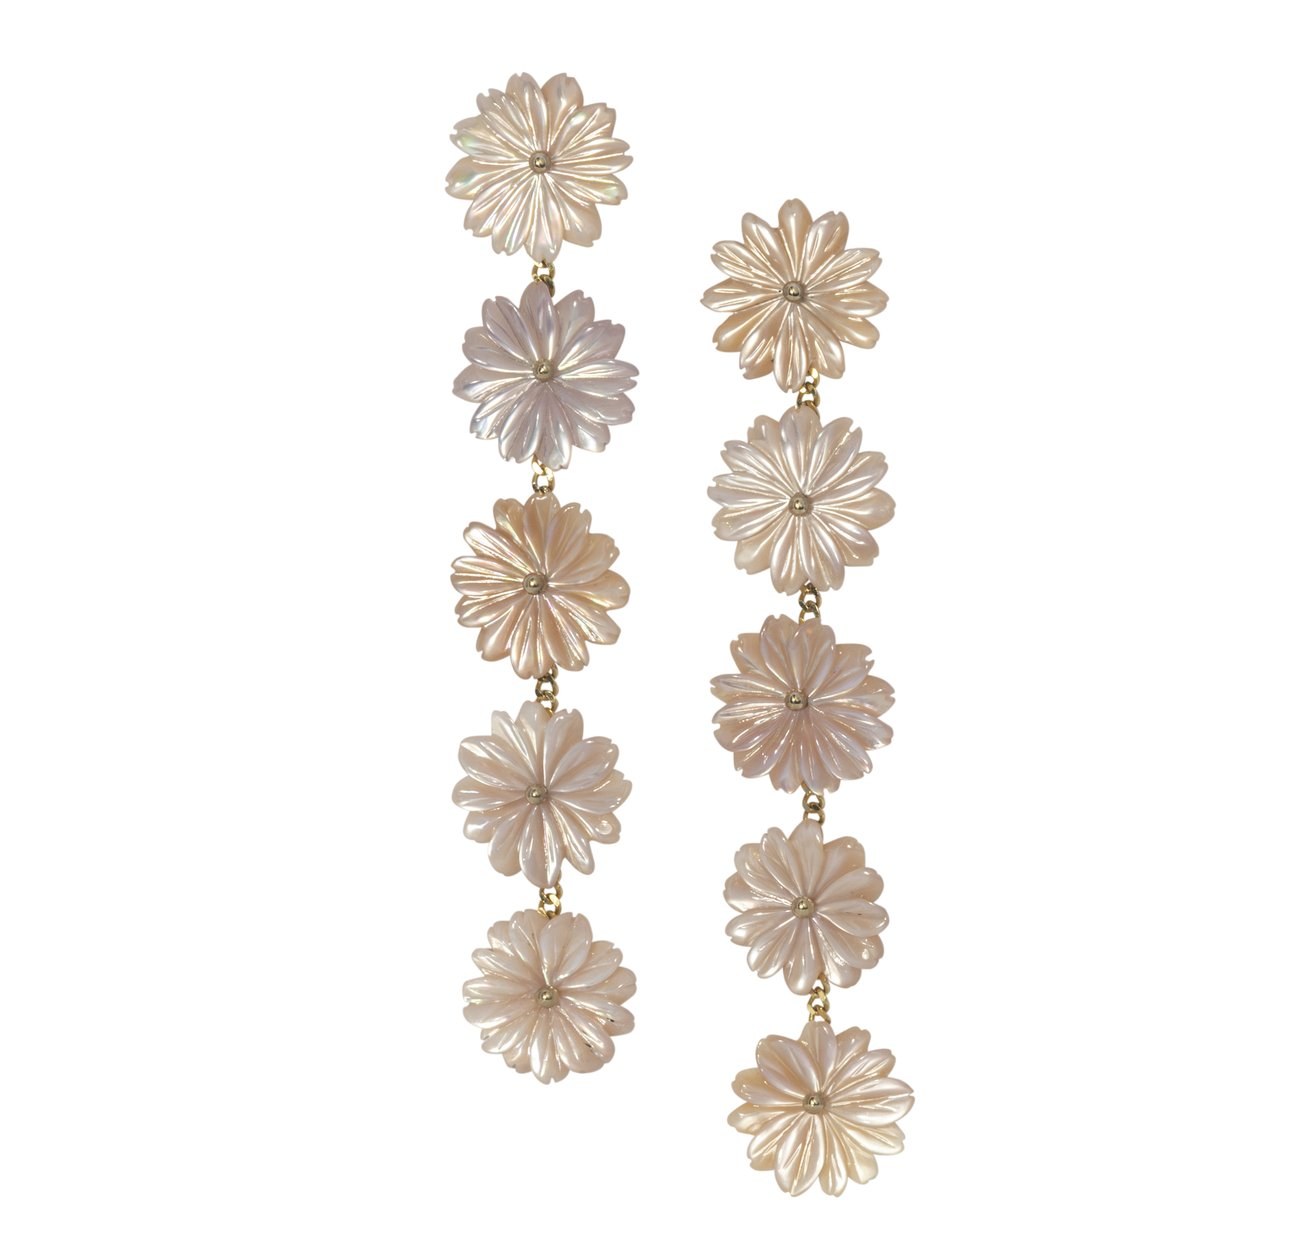 My Favorite Jewelry Designers For Unique Jewelry: The Mini Collection Dock Street Flower Drop Earrings